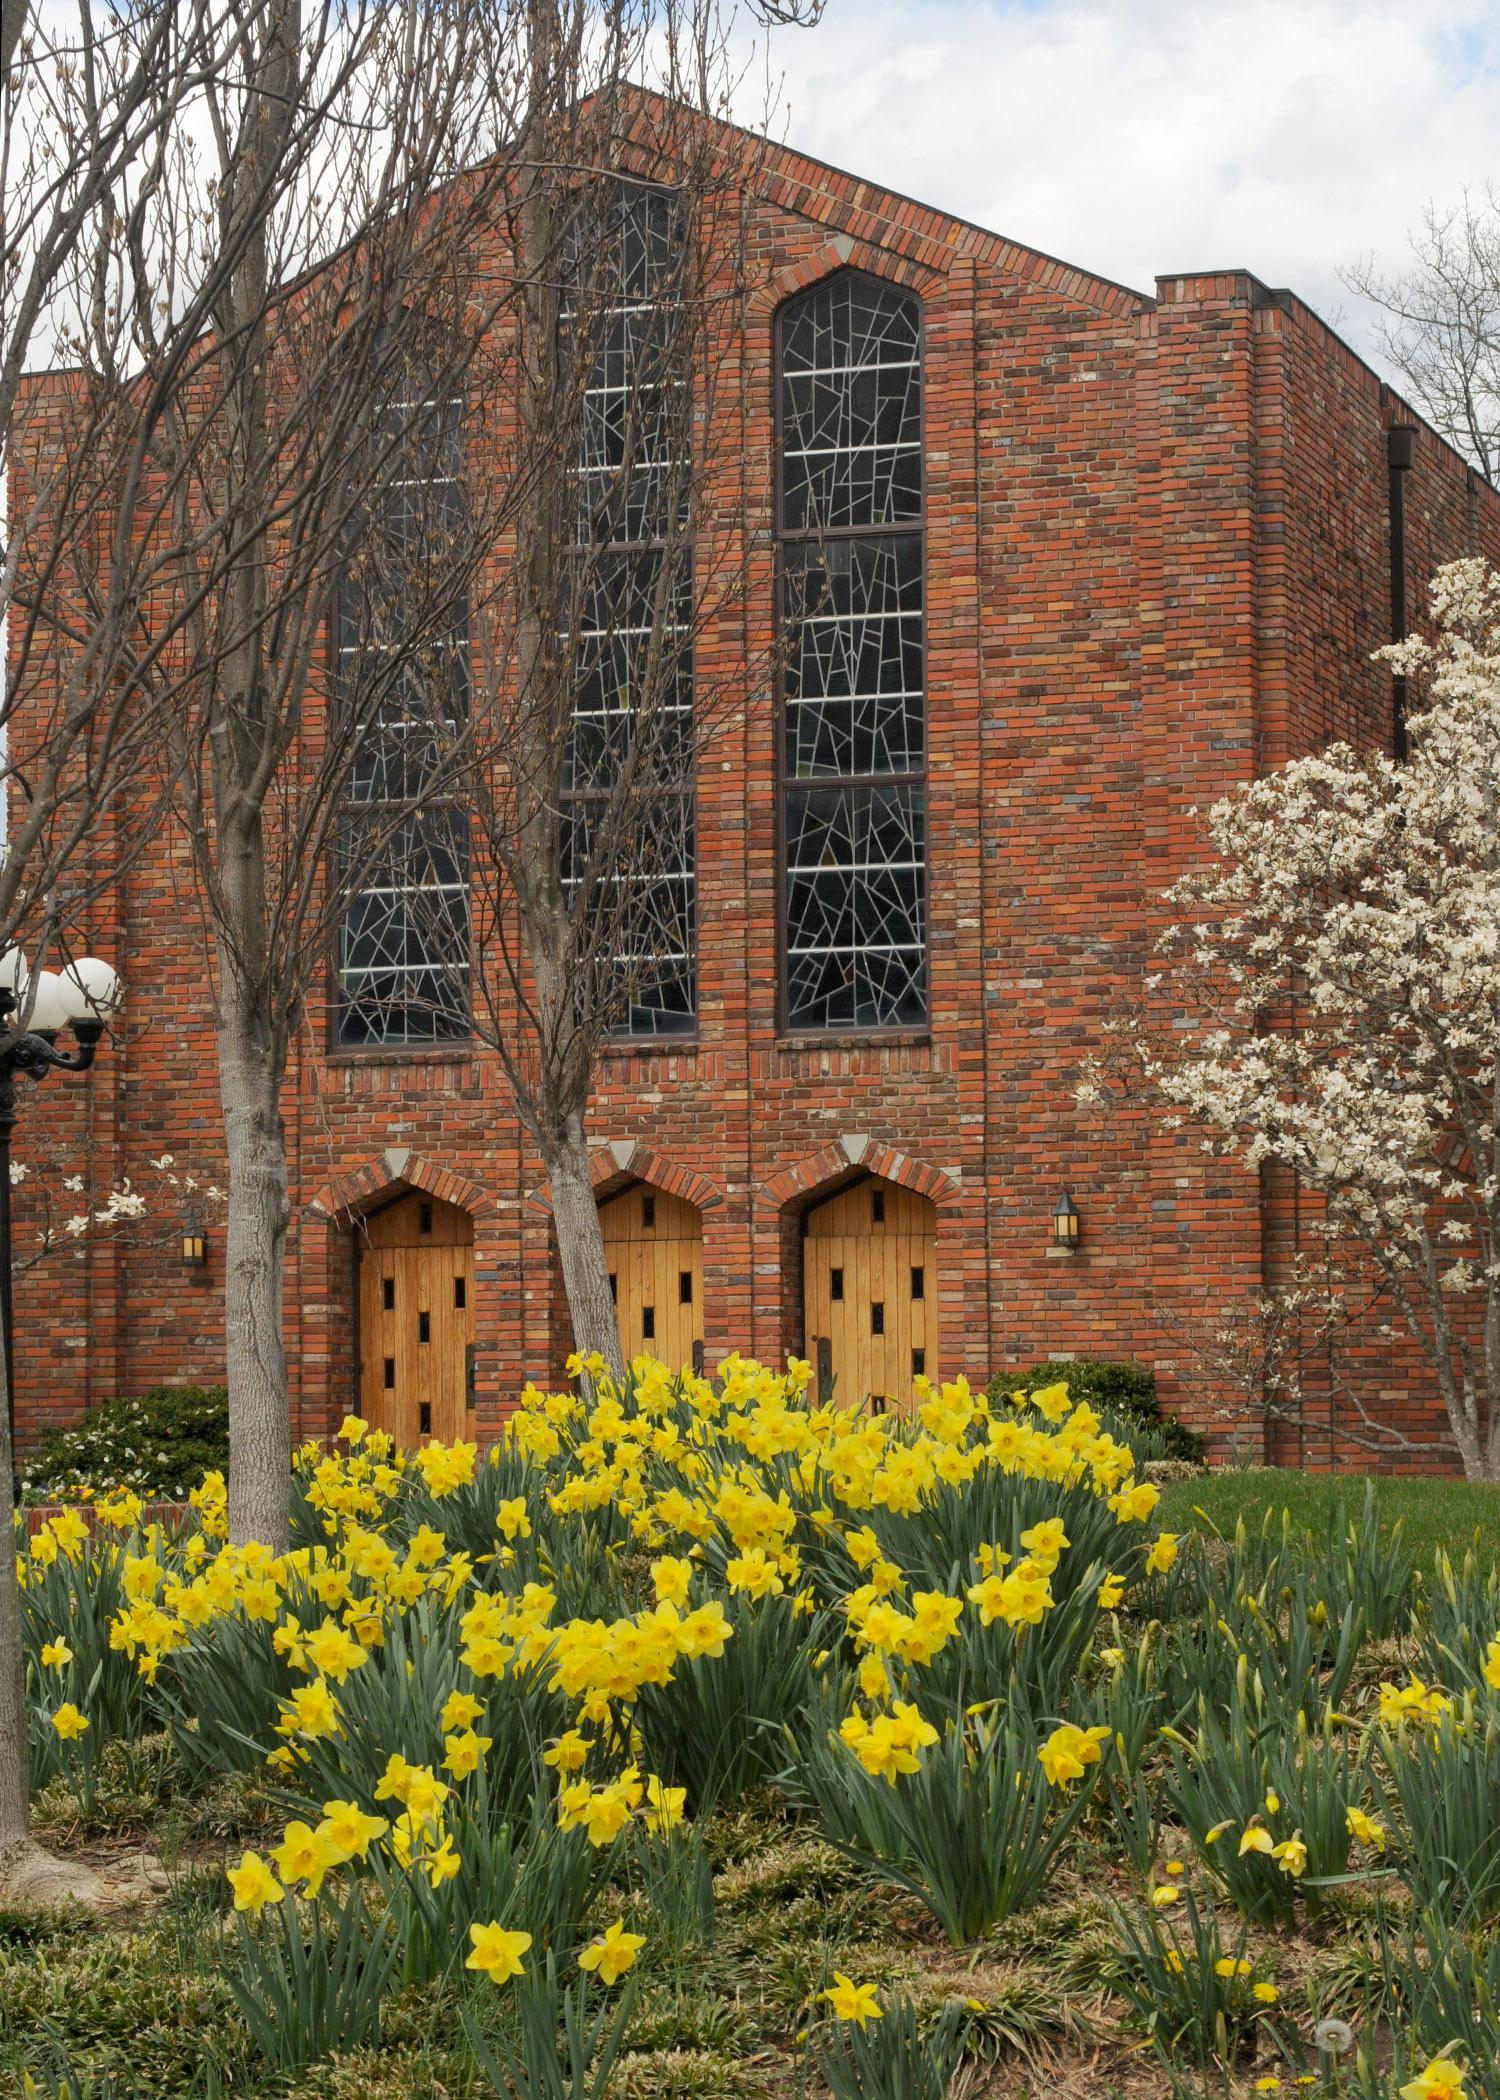 Spring-flowering daffodils brighten up the winter landscape at Mississippi State University's Chapel of Memories. (Photo by MSU Ag Communications/Kat Lawrence)